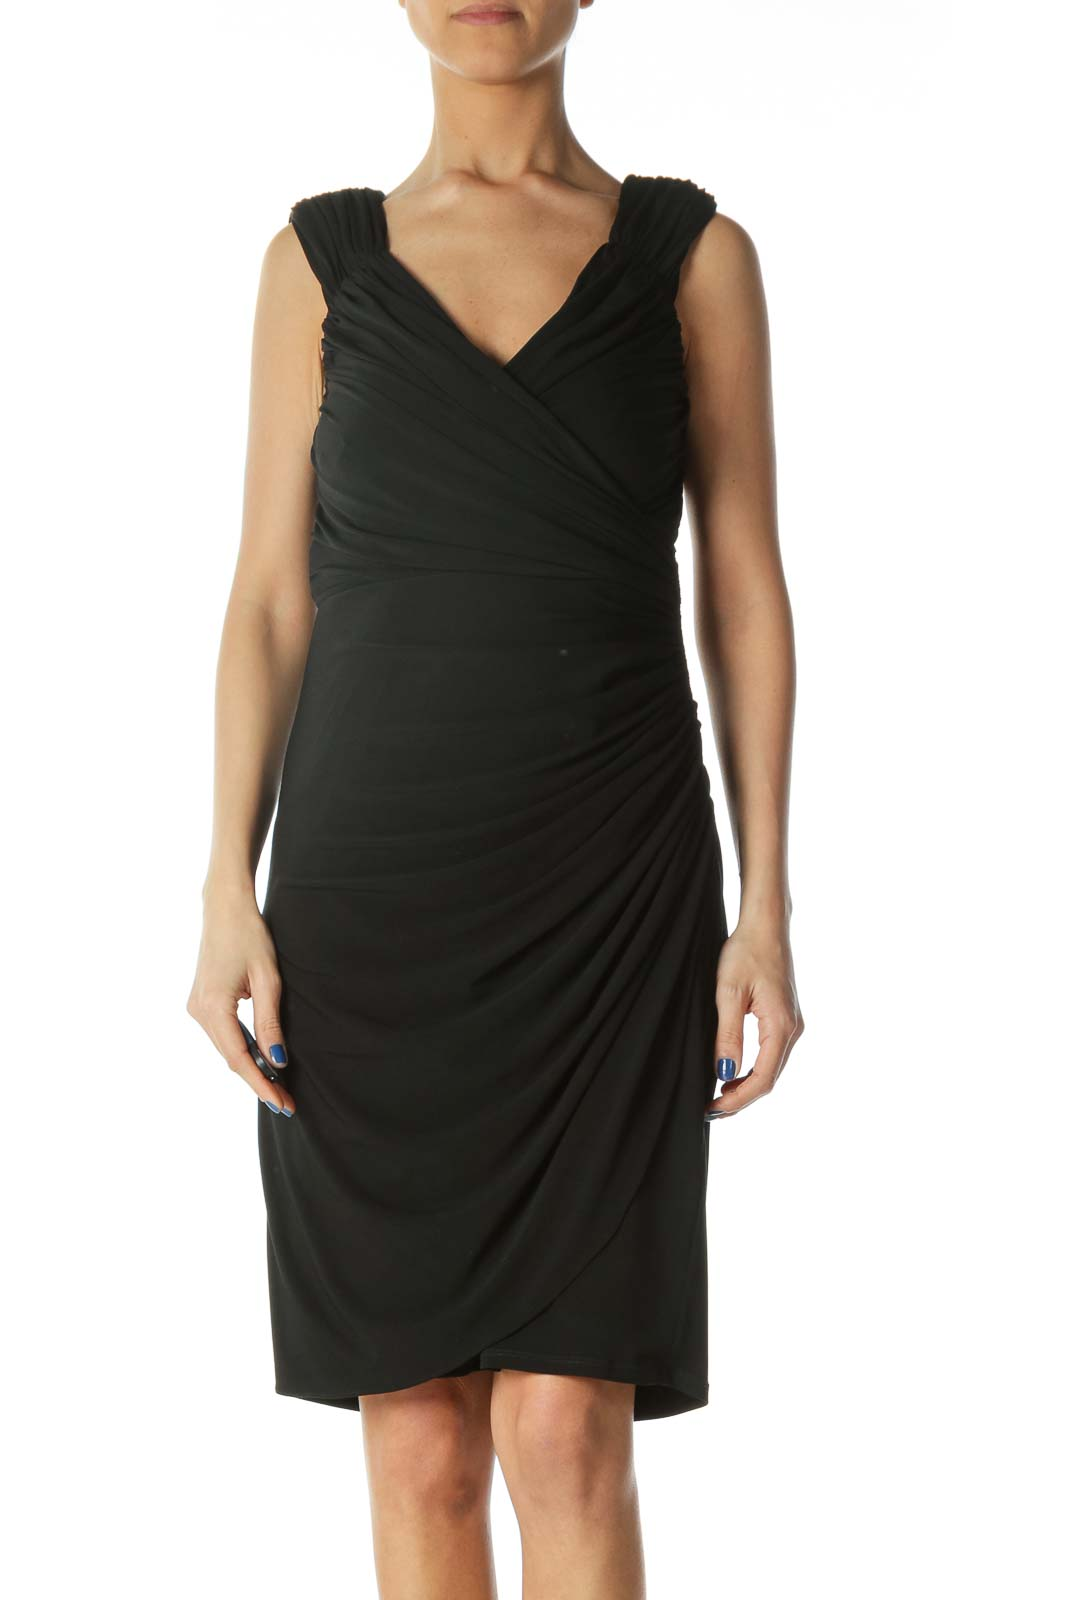 Black Bodycan Cocktail Dress